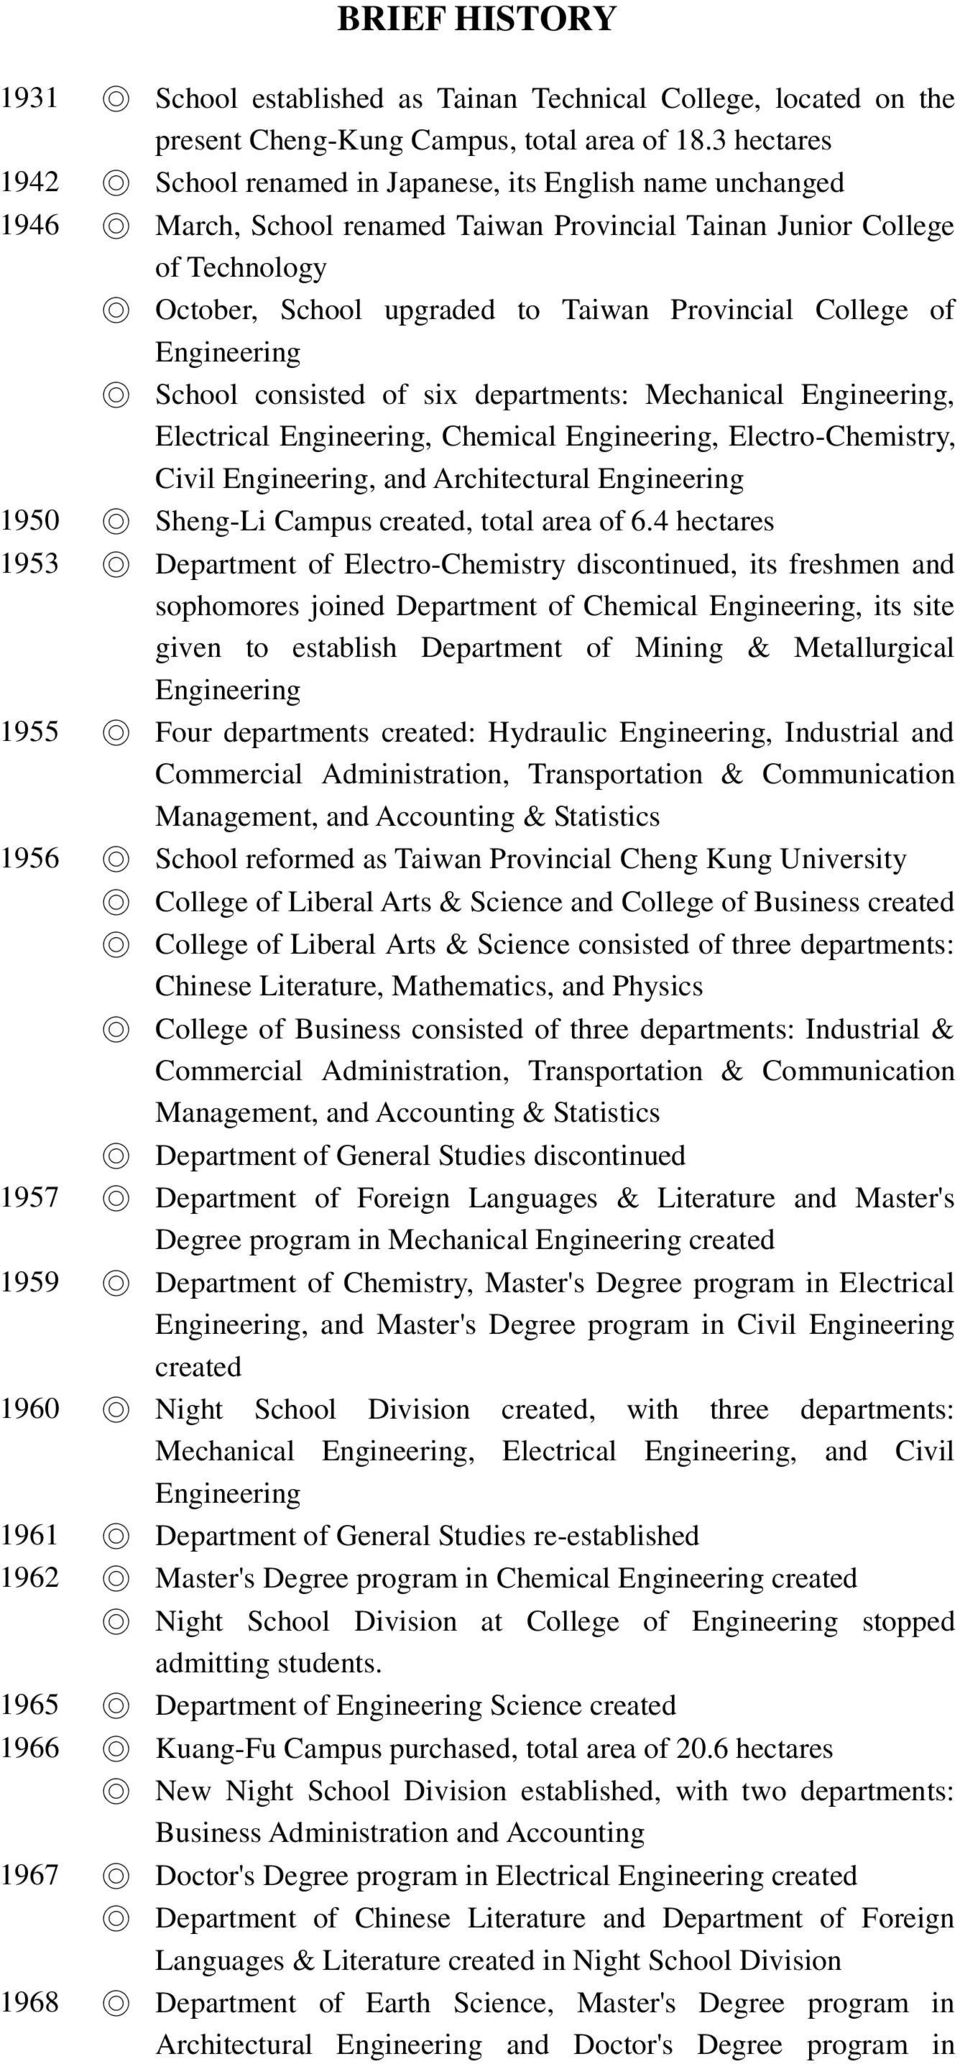 College of School consisted of six departments: Mechanical, Electrical, Chemical, Electro-Chemistry, Civil, and Architectural 1950 Sheng-Li Campus, total area of 6.